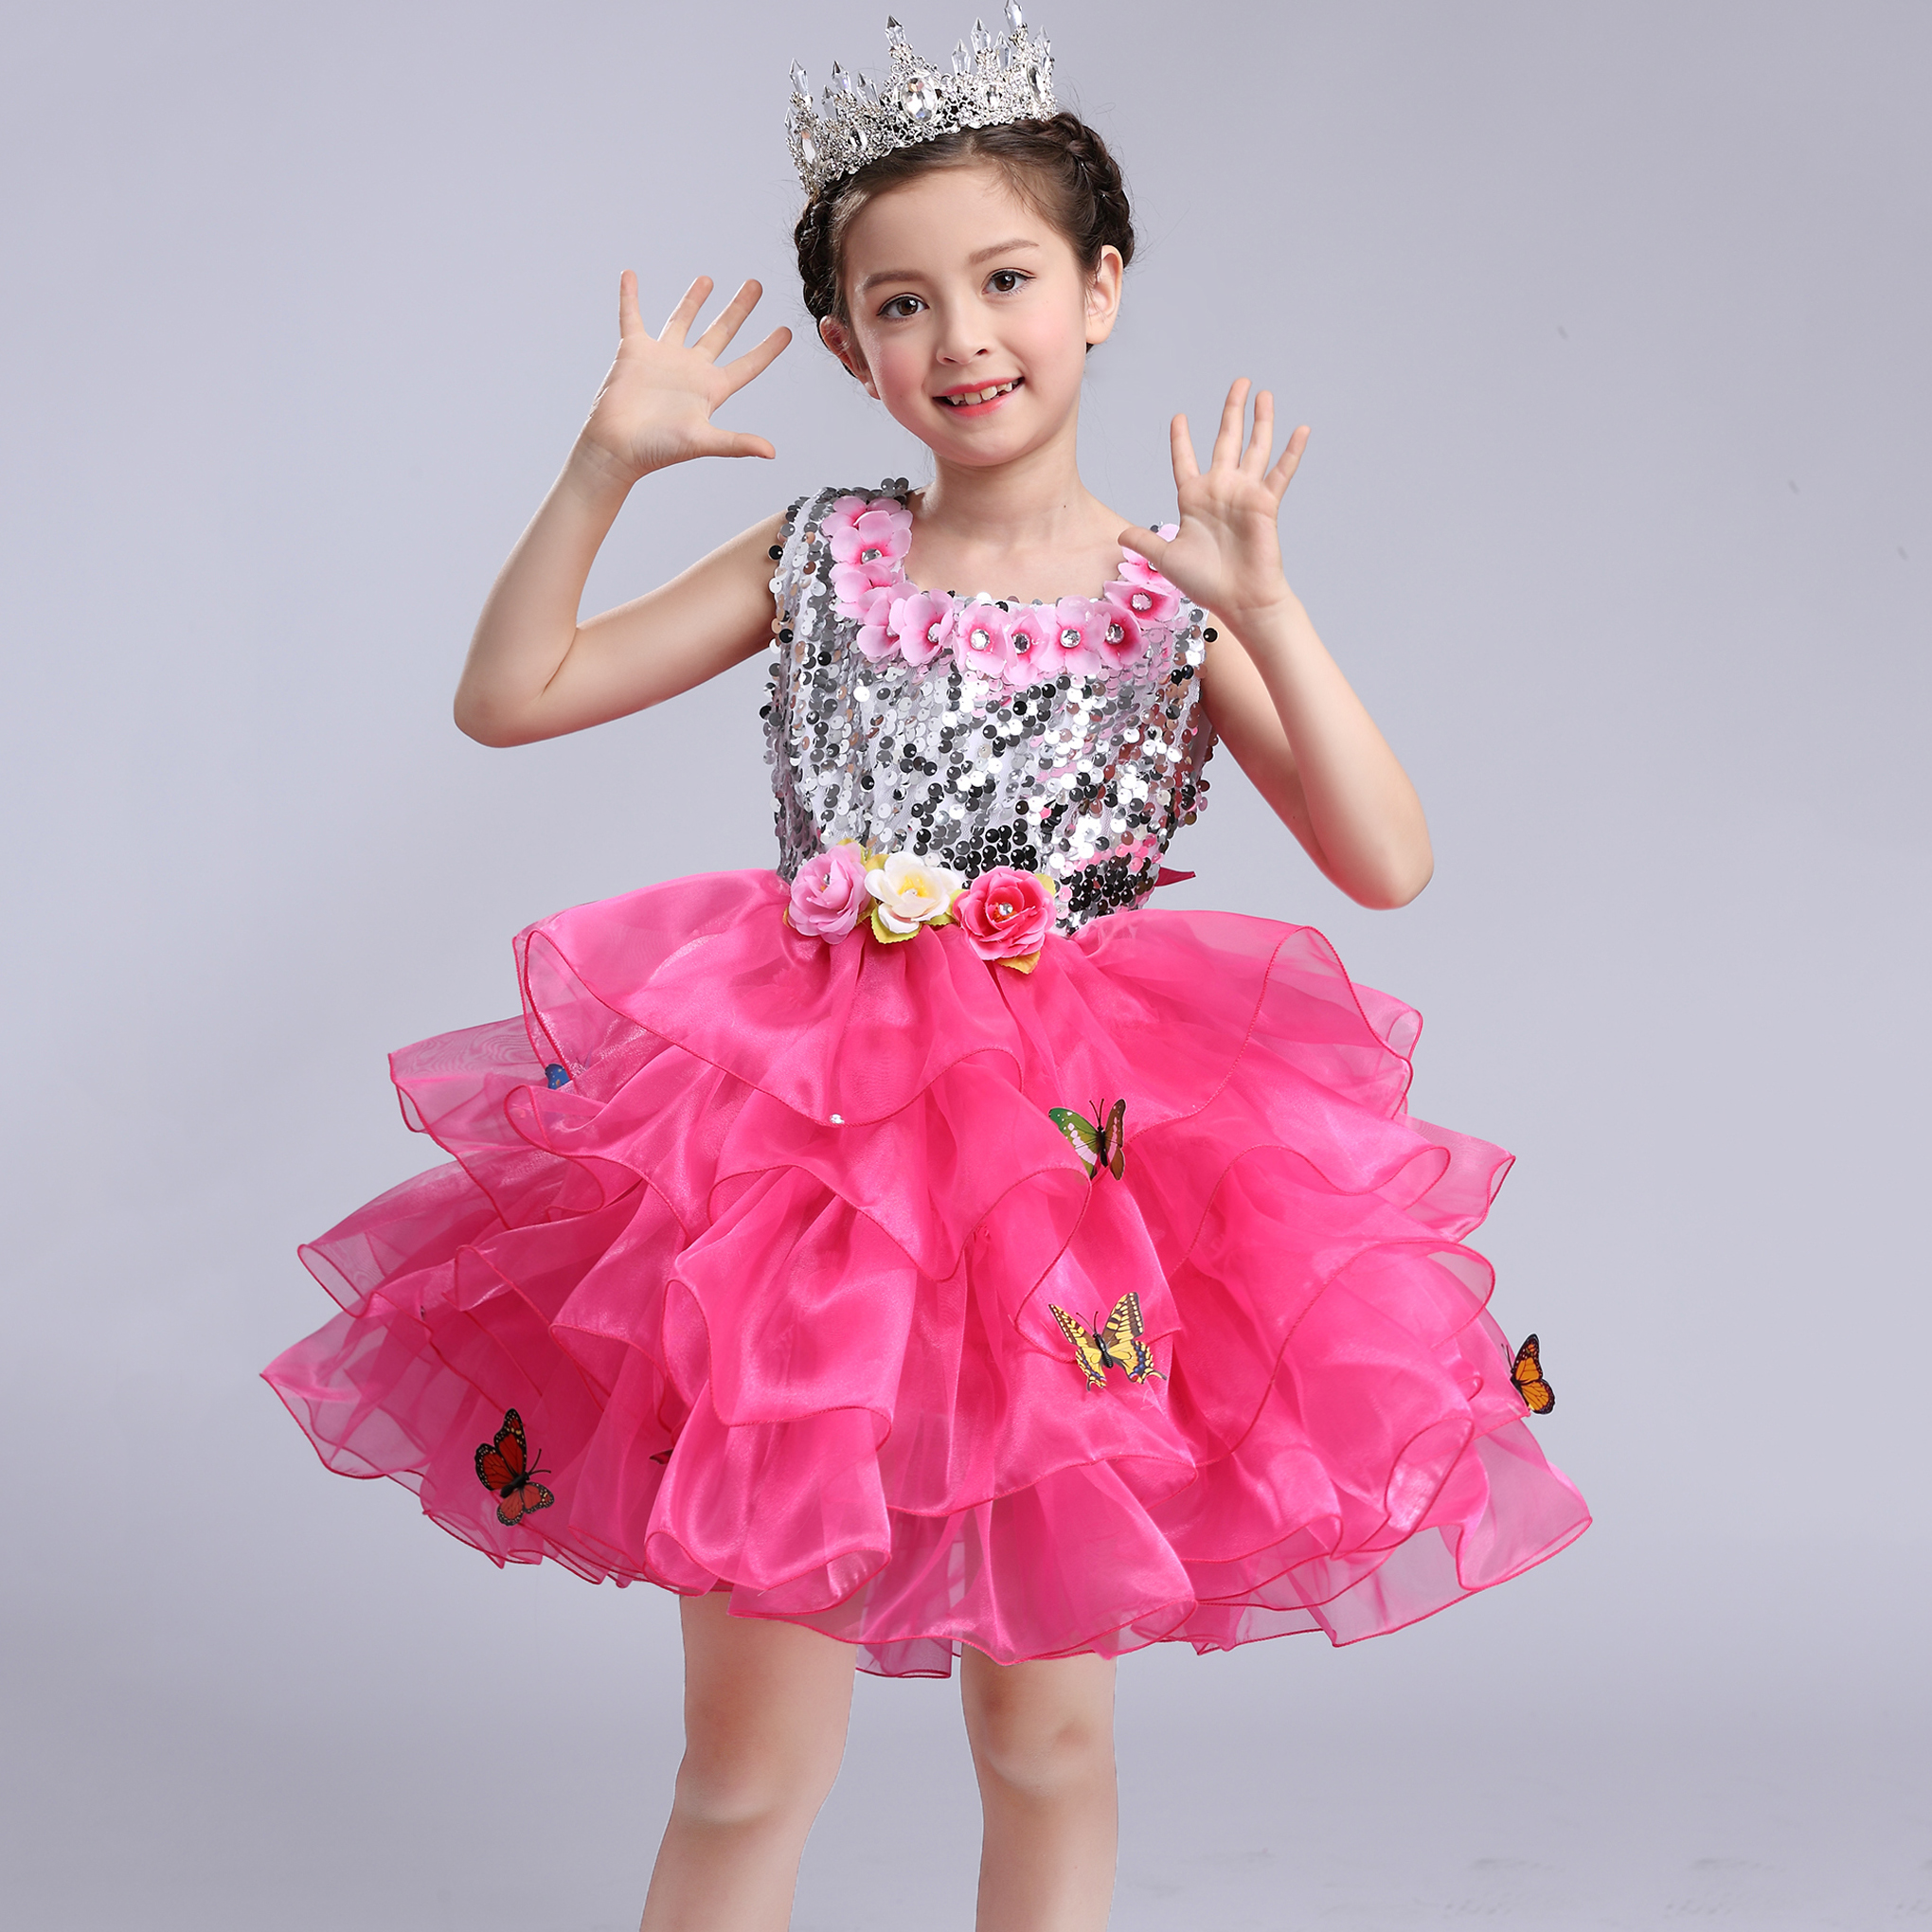 Fashion Shiny Sequined Butterflies Ball Dance Performance Clothes Carnaval Costumes for Kids Children Dresses Girls New 2017 4pcs new for ball uff bes m18mg noc80b s04g